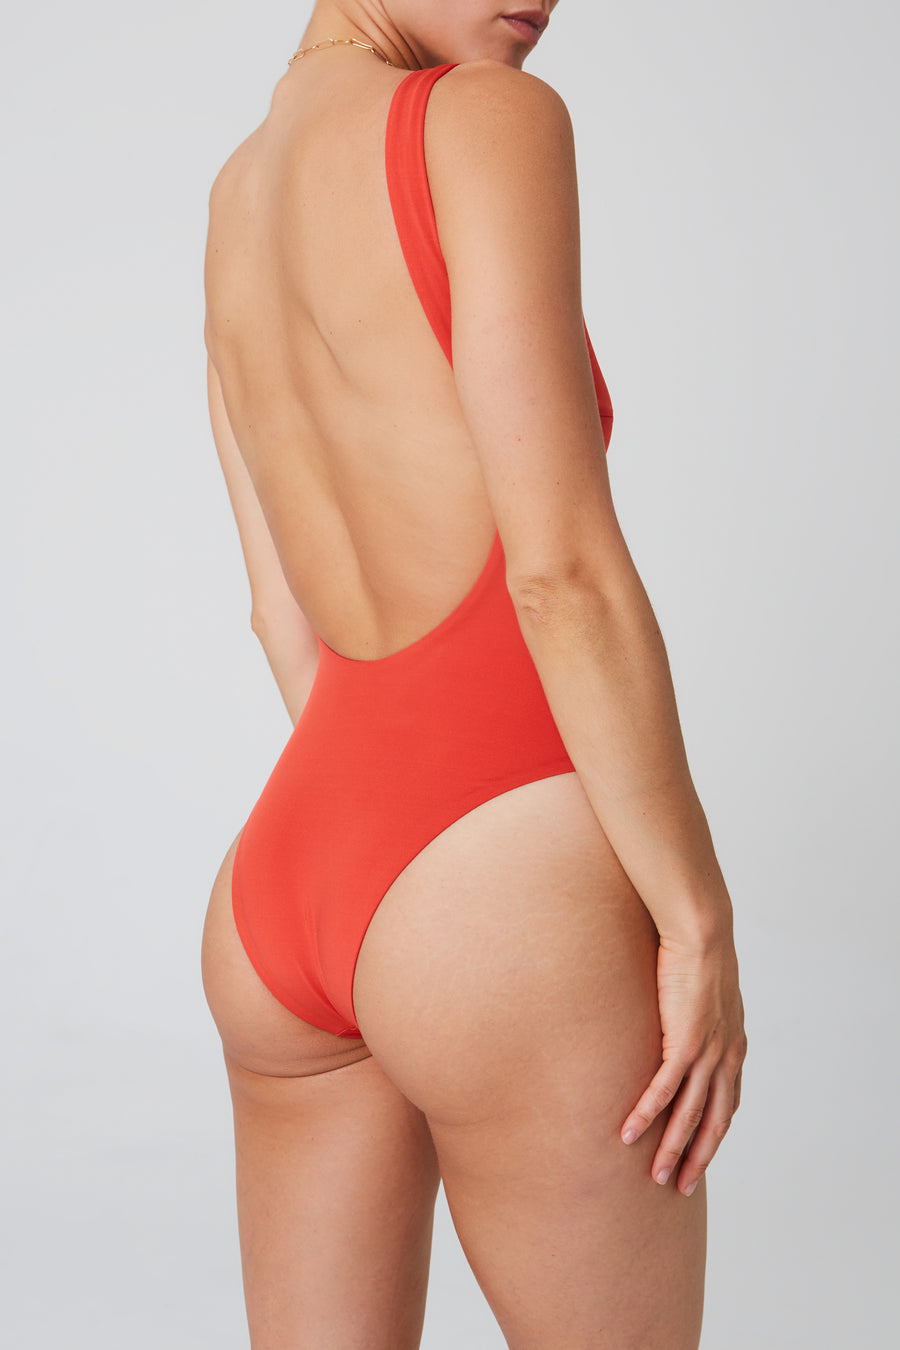 Swimsuit – v-neck, red